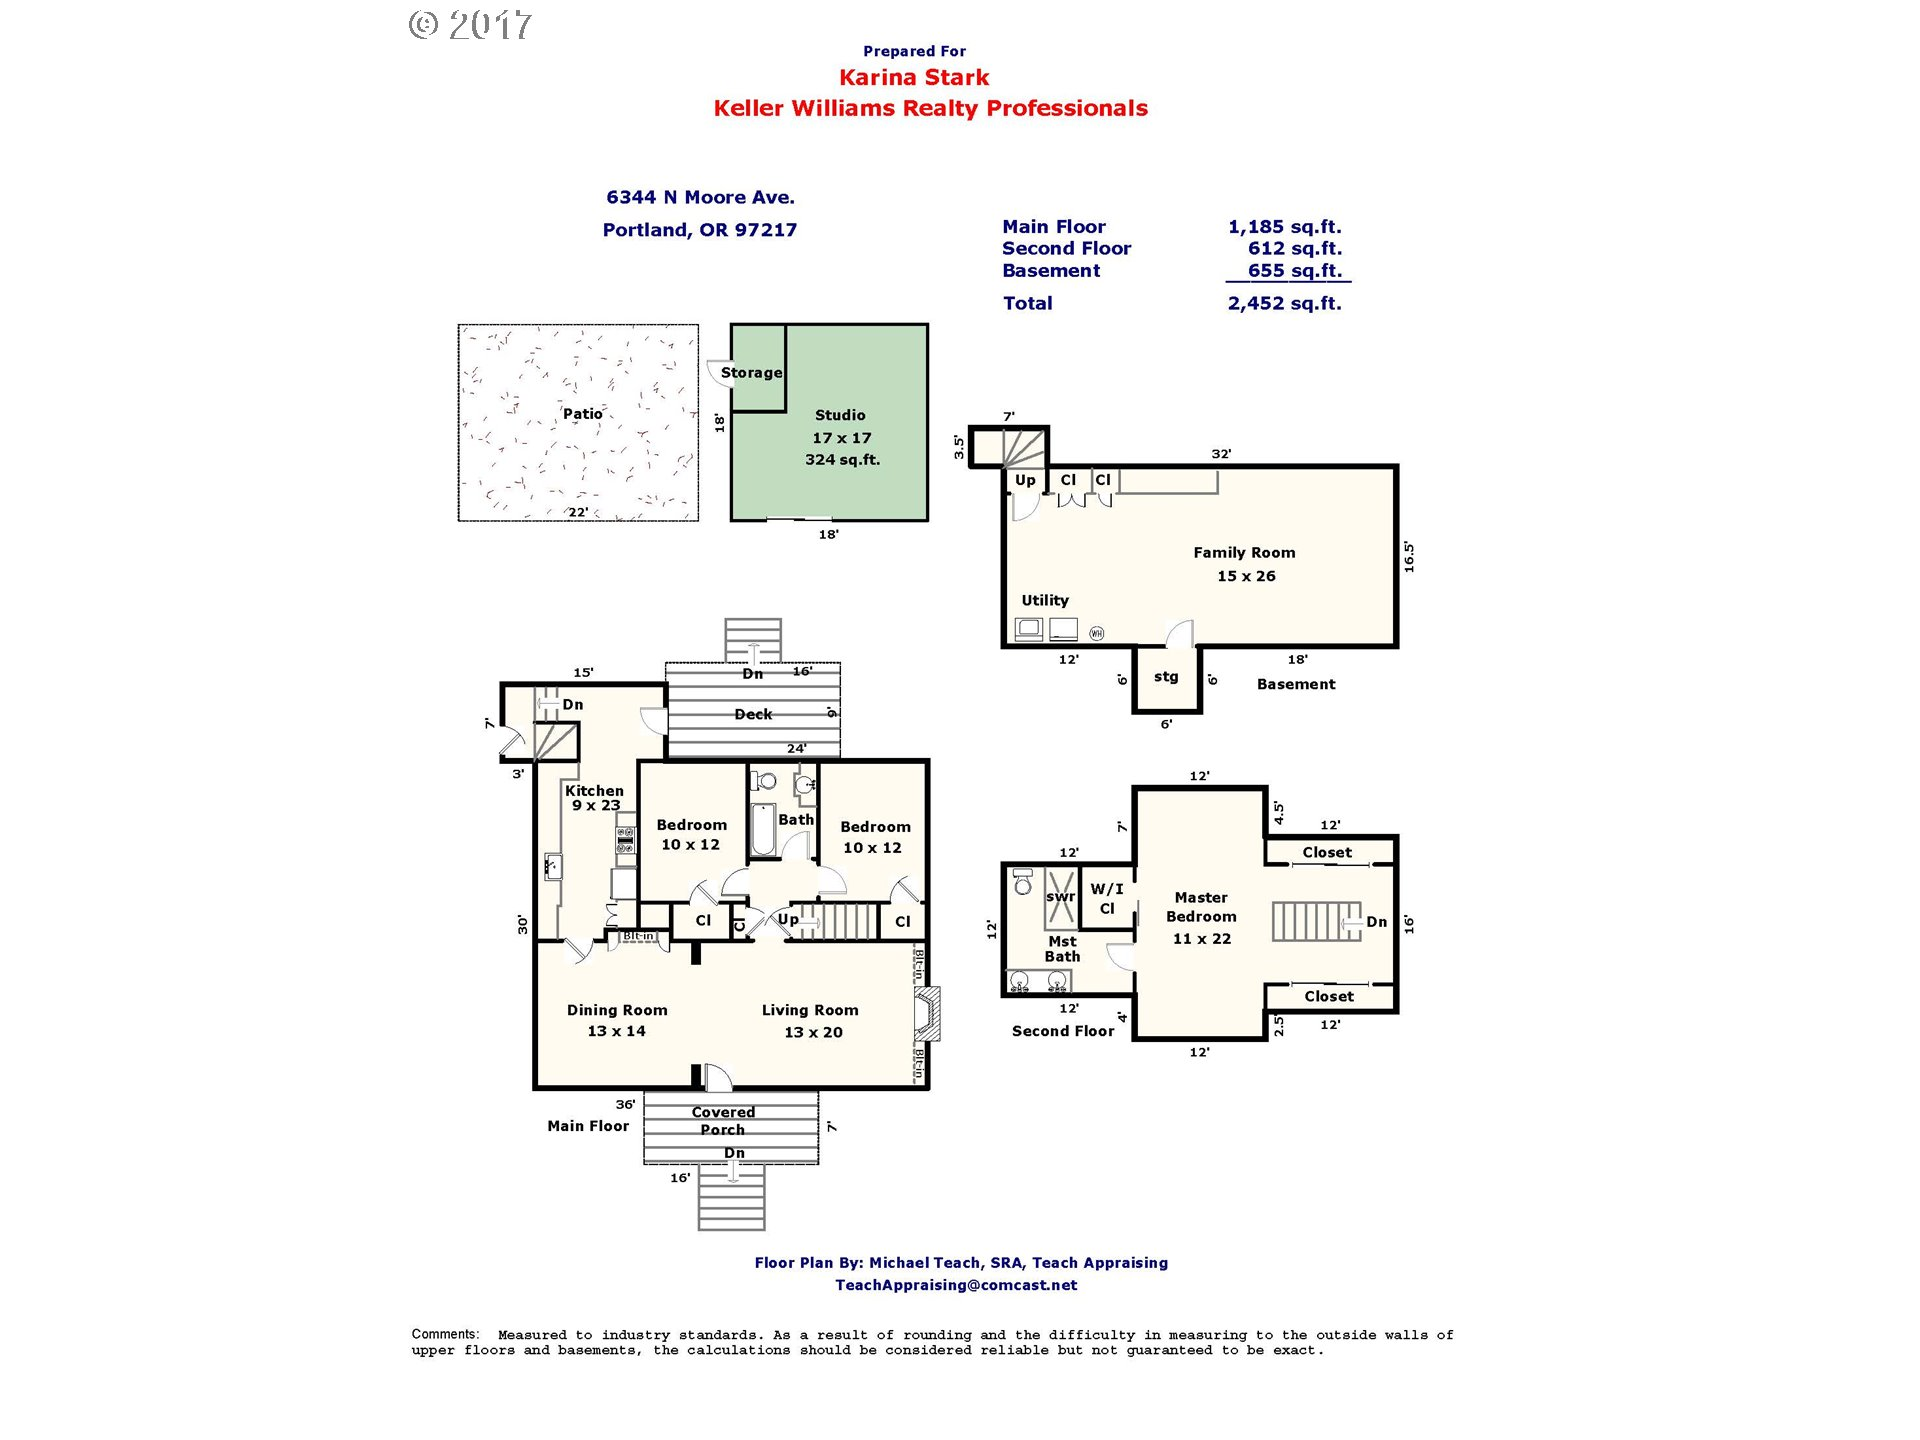 2452 sq. ft 3 bedrooms 2 bathrooms  House For Sale,Portland, OR